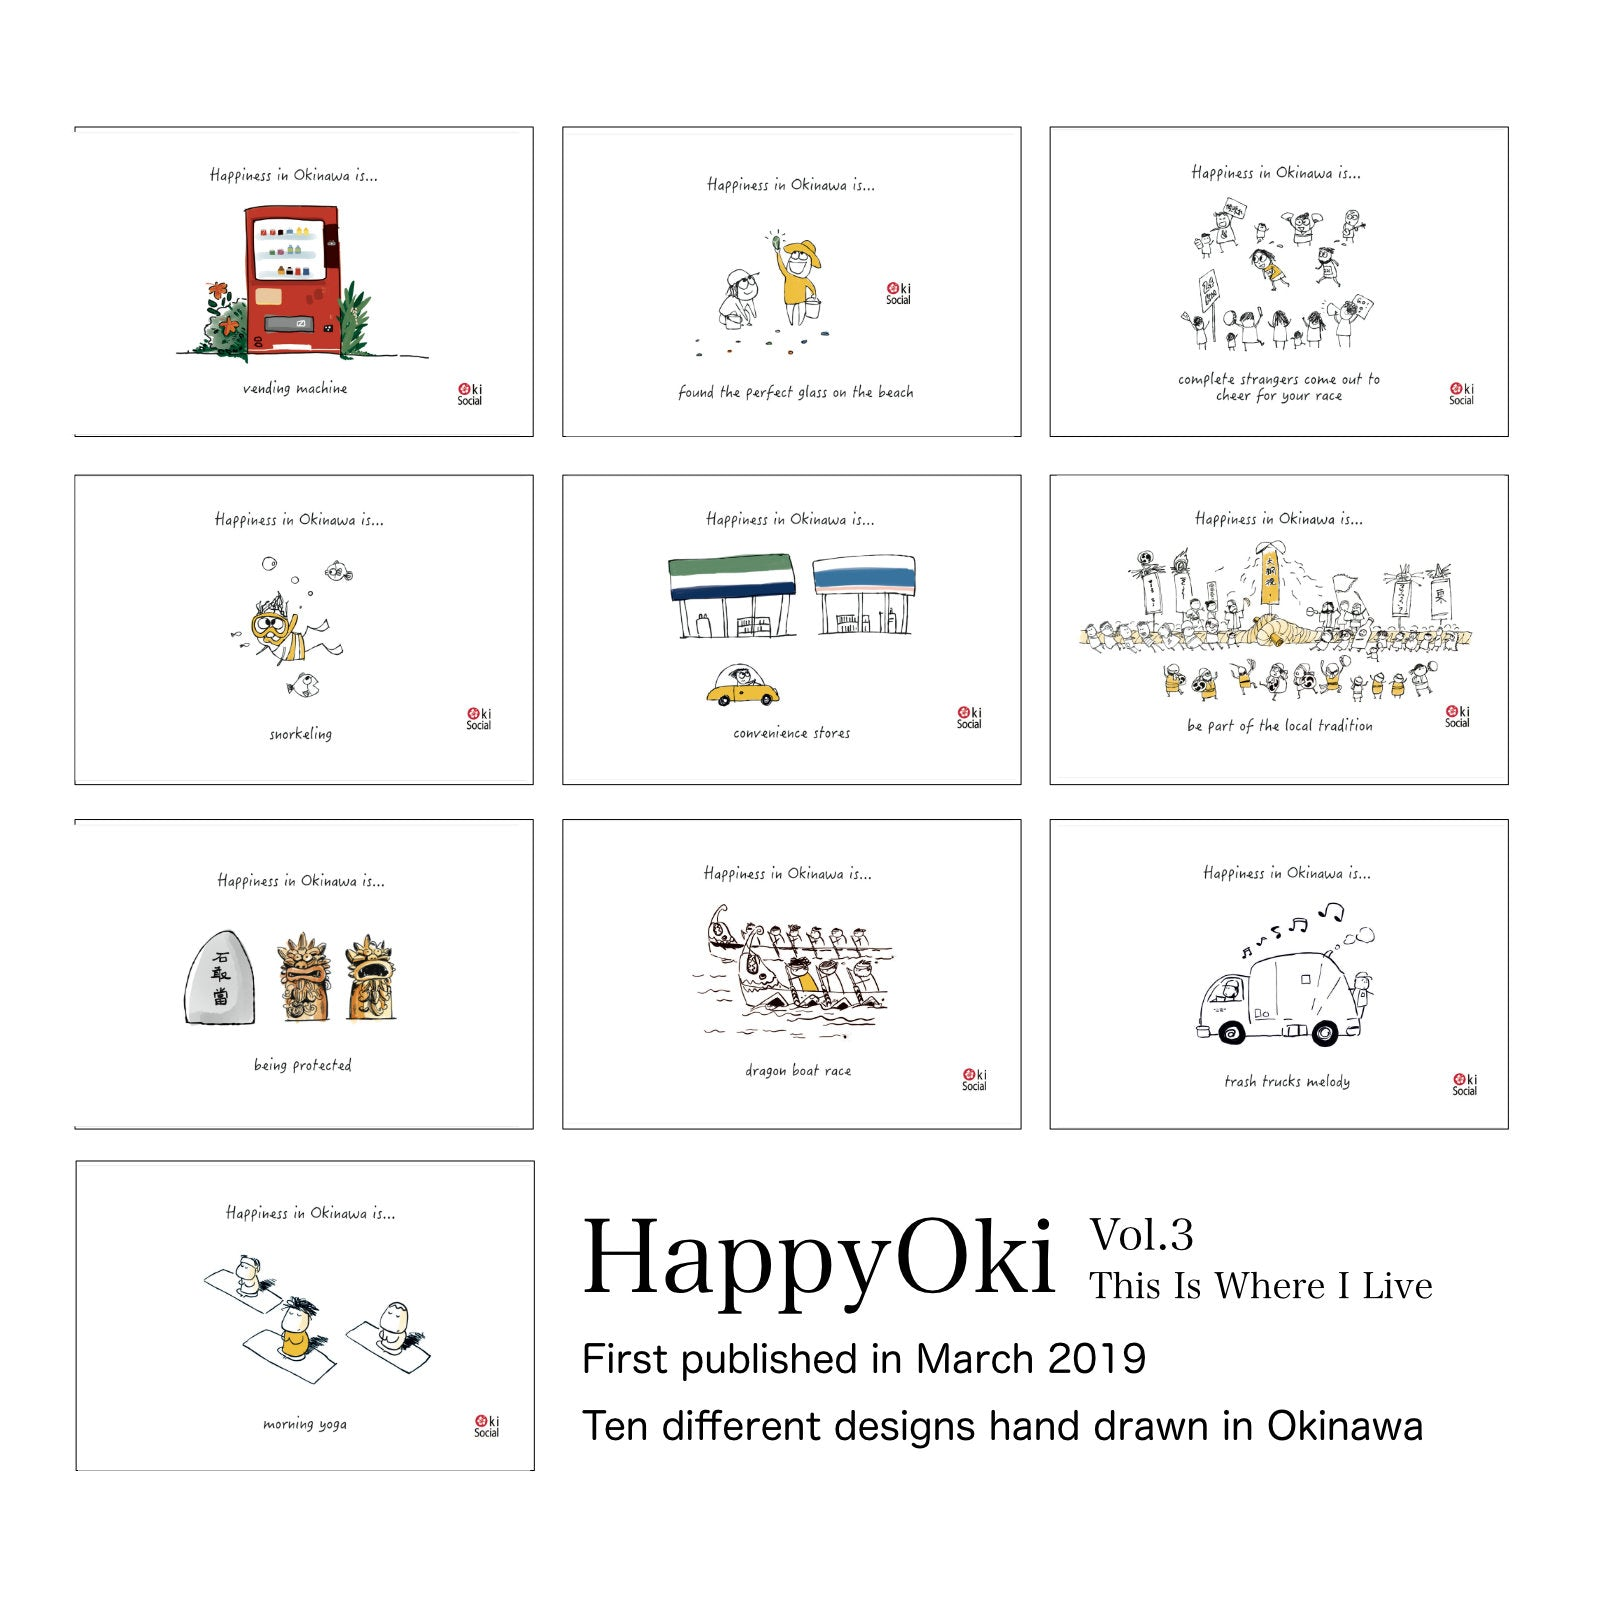 Happiness In Okinawa Postcard Sets - 10 Cards